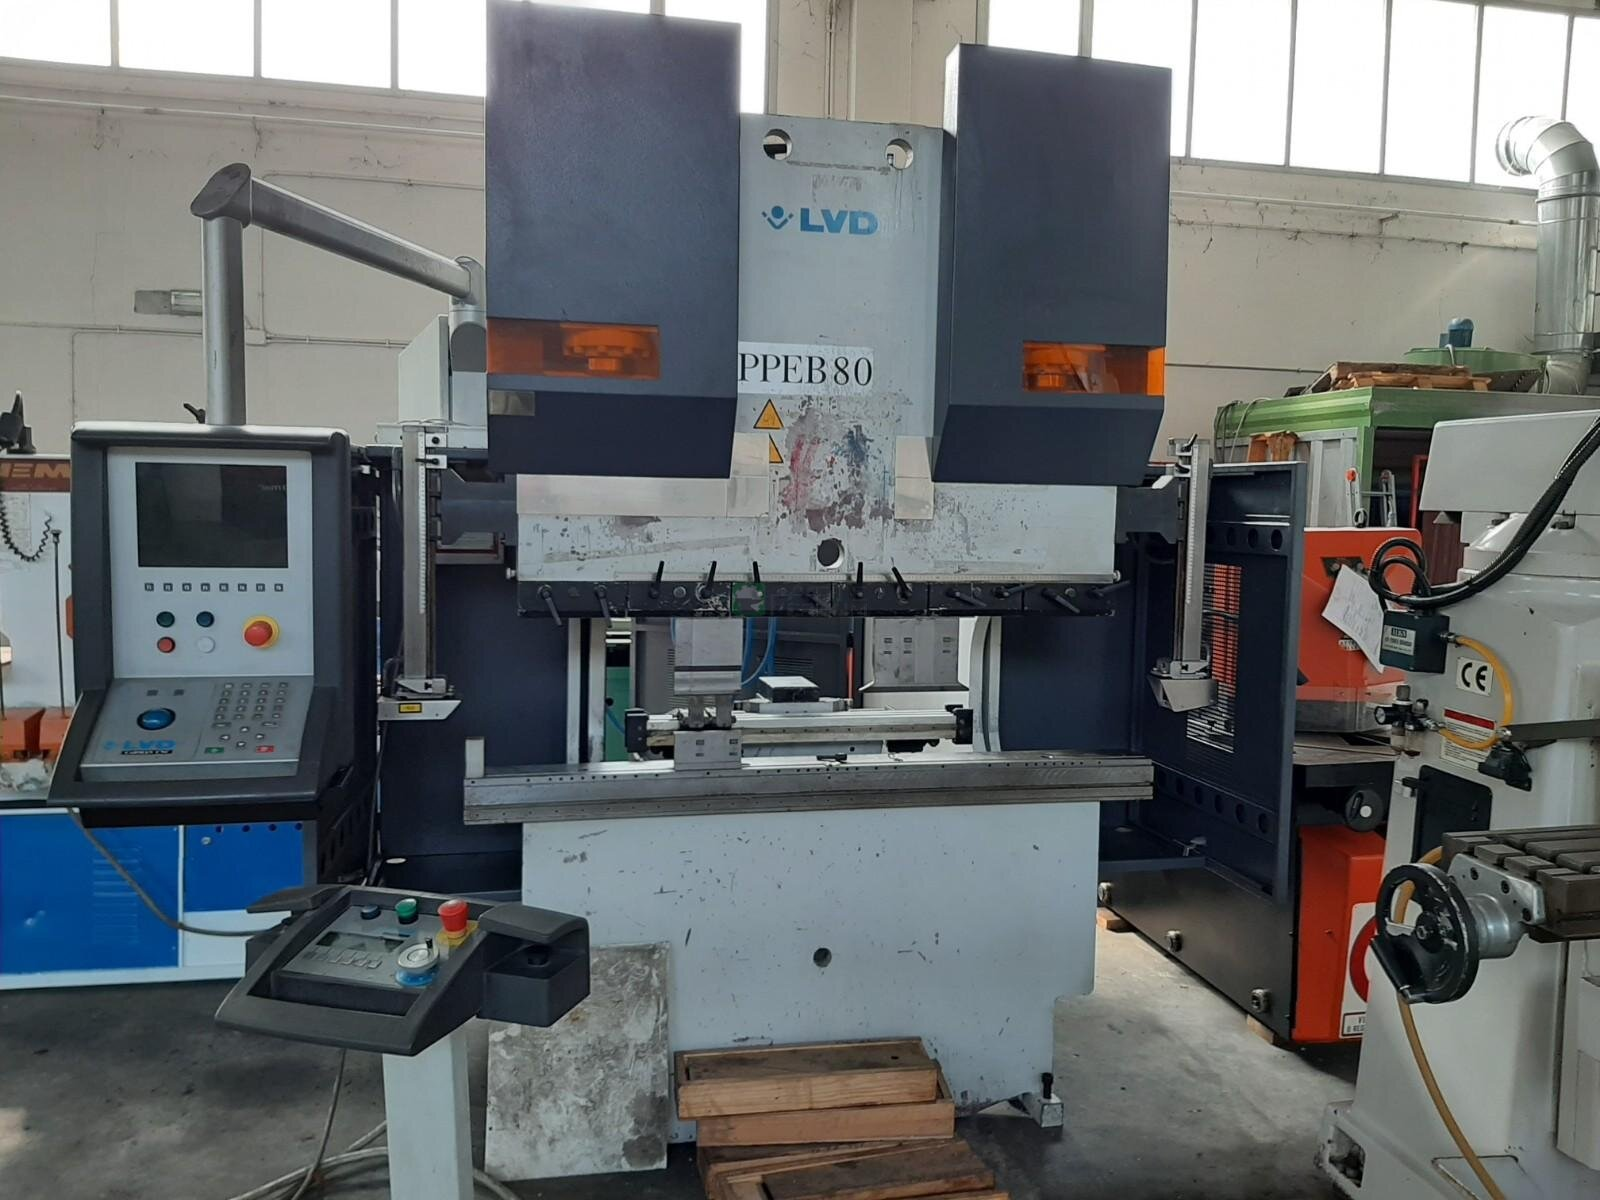 /en/lvd-ppeb-80-1500-x-80t-6-axis-press-brake-2001-detail